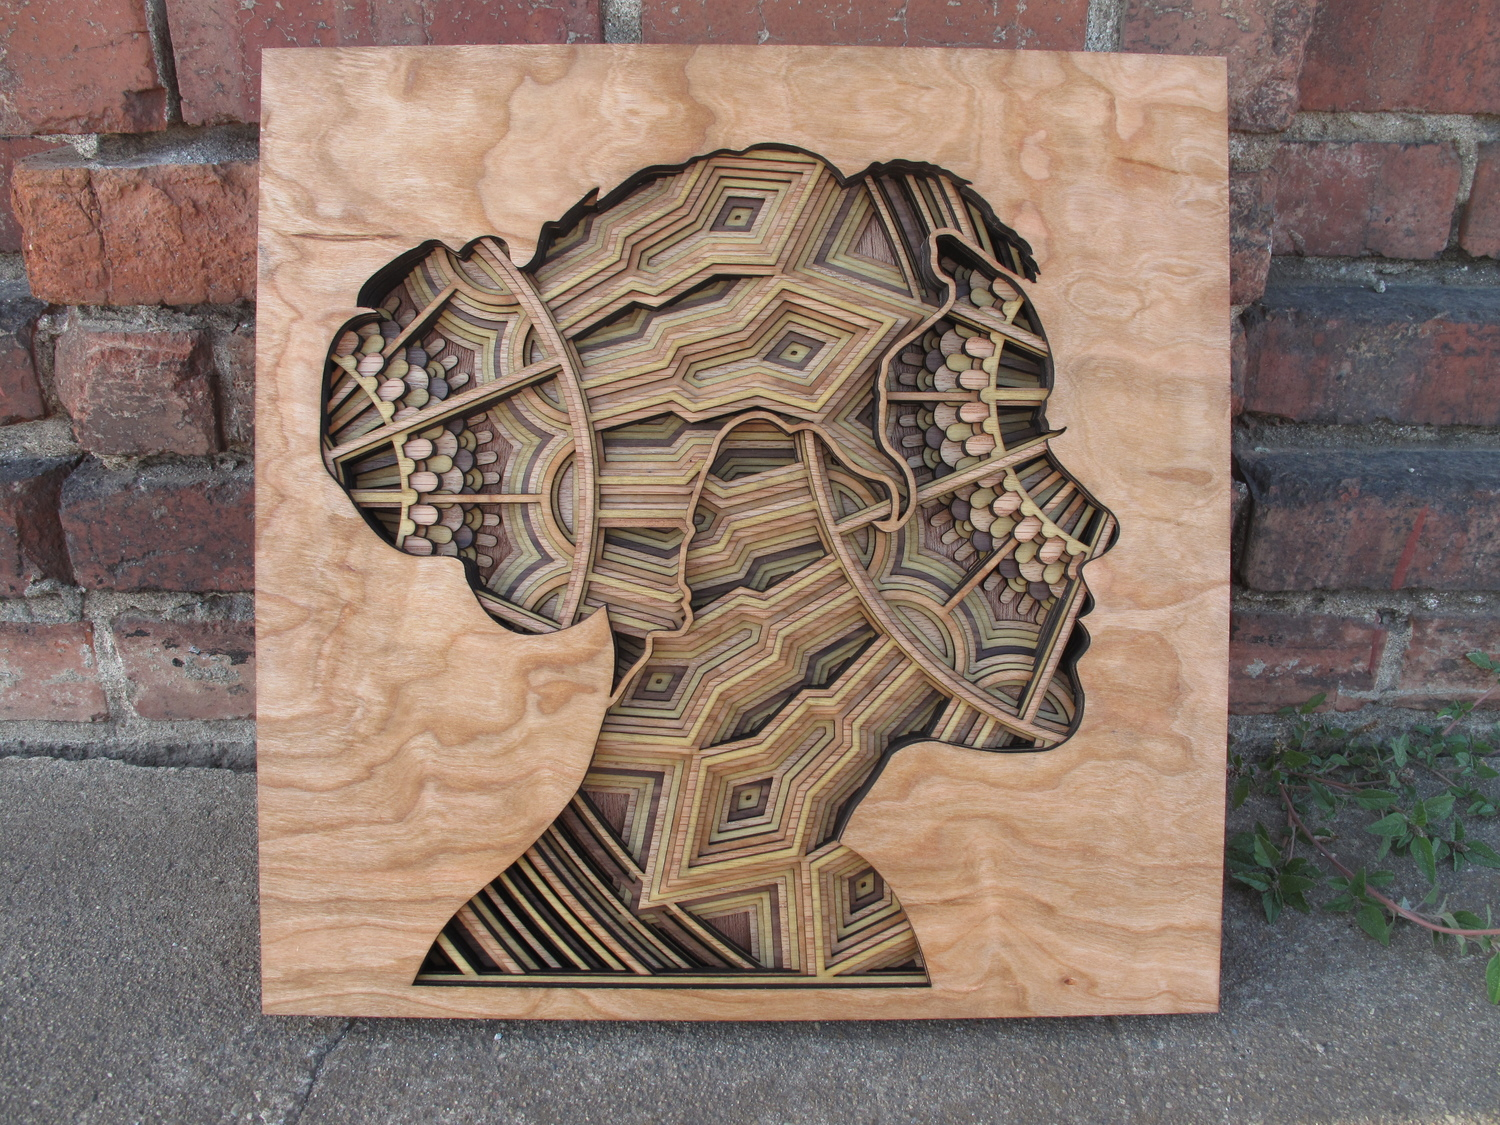 Laser-Cut Wood Relief Sculptures by Gabriel Schama #artpeople